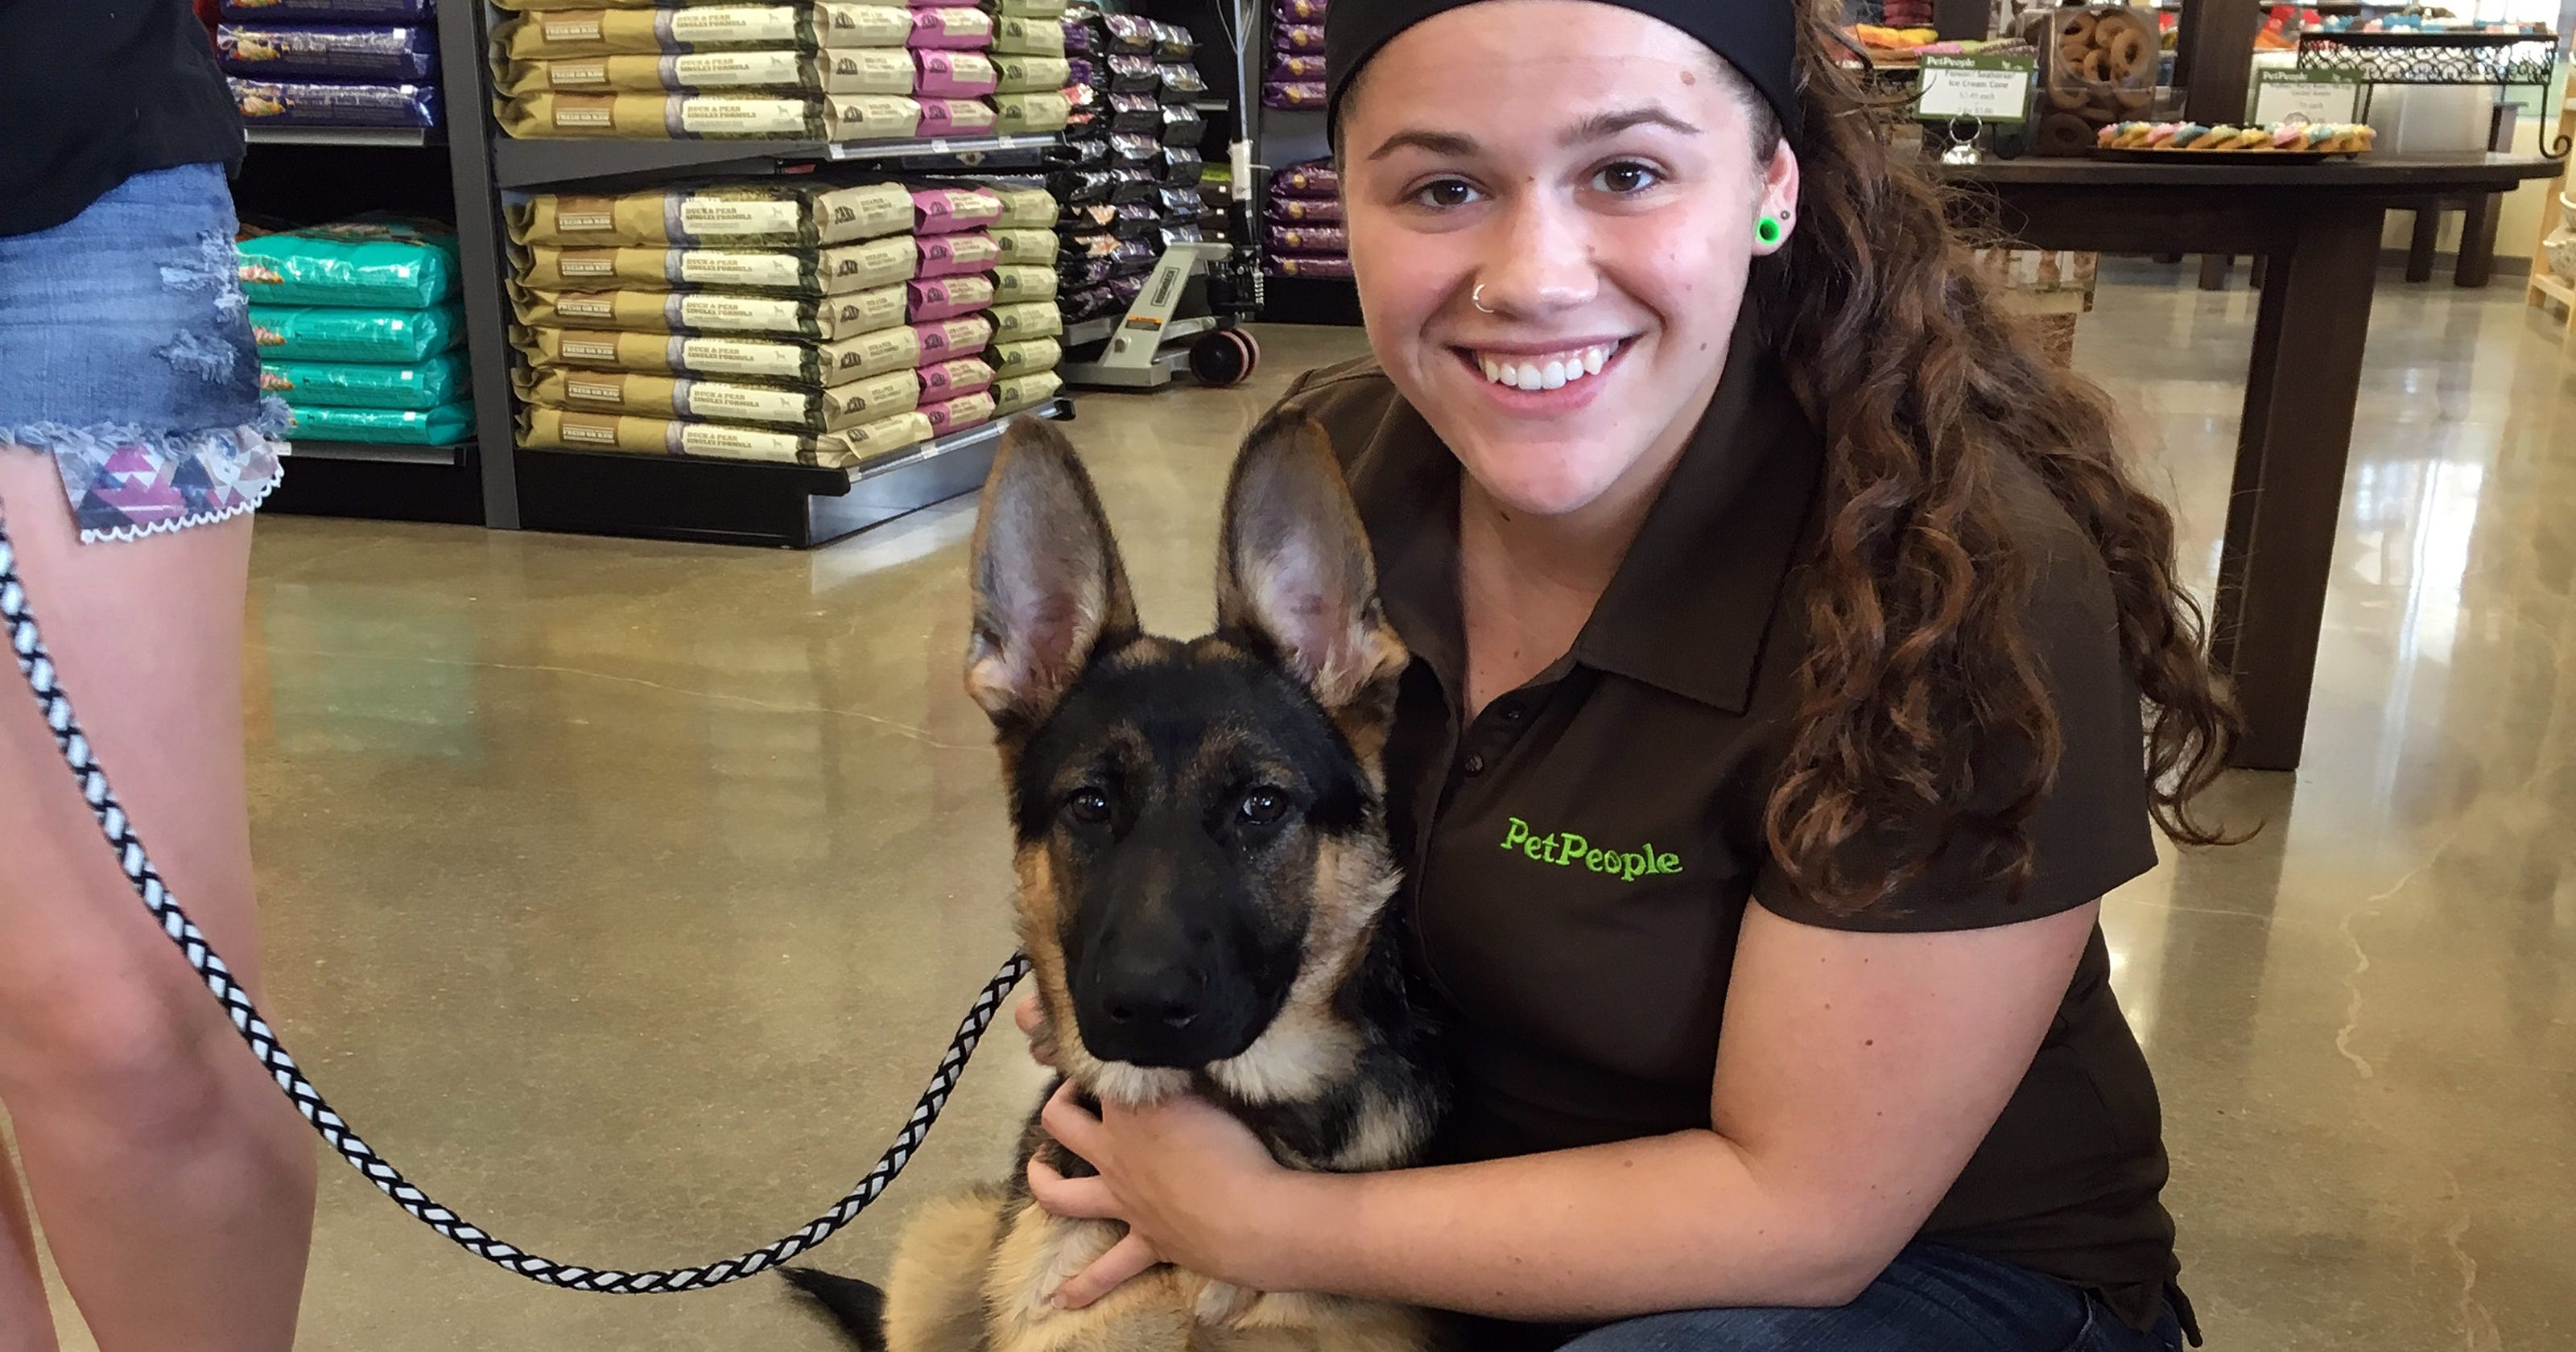 Petpeople plans its first florida stores in collier and lee counties solutioingenieria Gallery